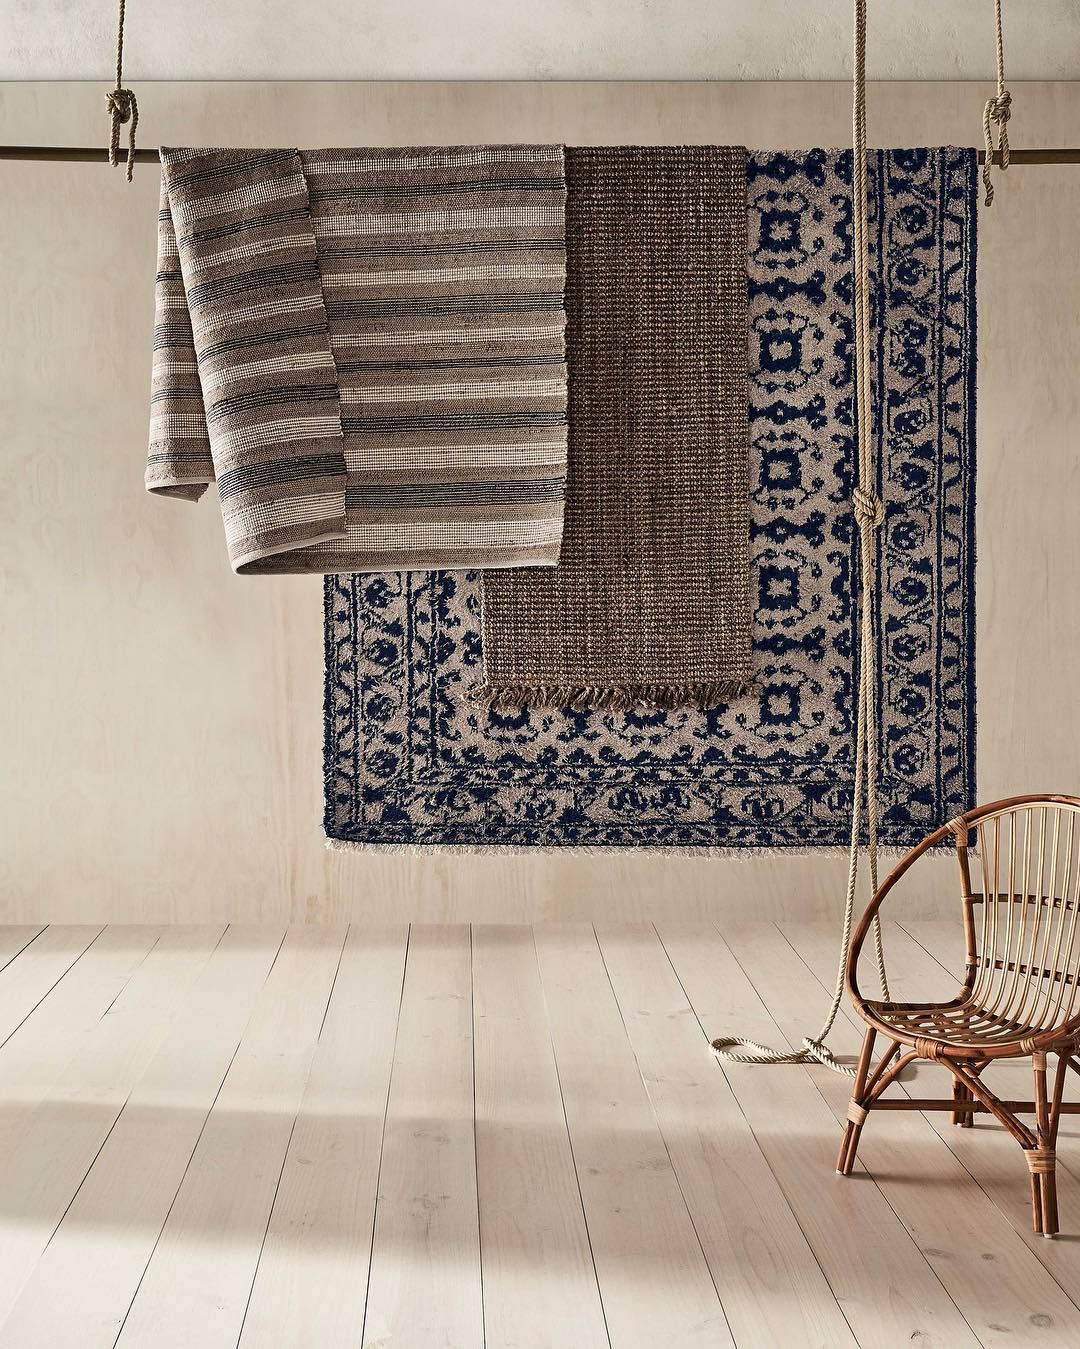 Freedom Furniture Rugs Have You Sorted Your Summer Styling Yet A New Rug Is The Perfect